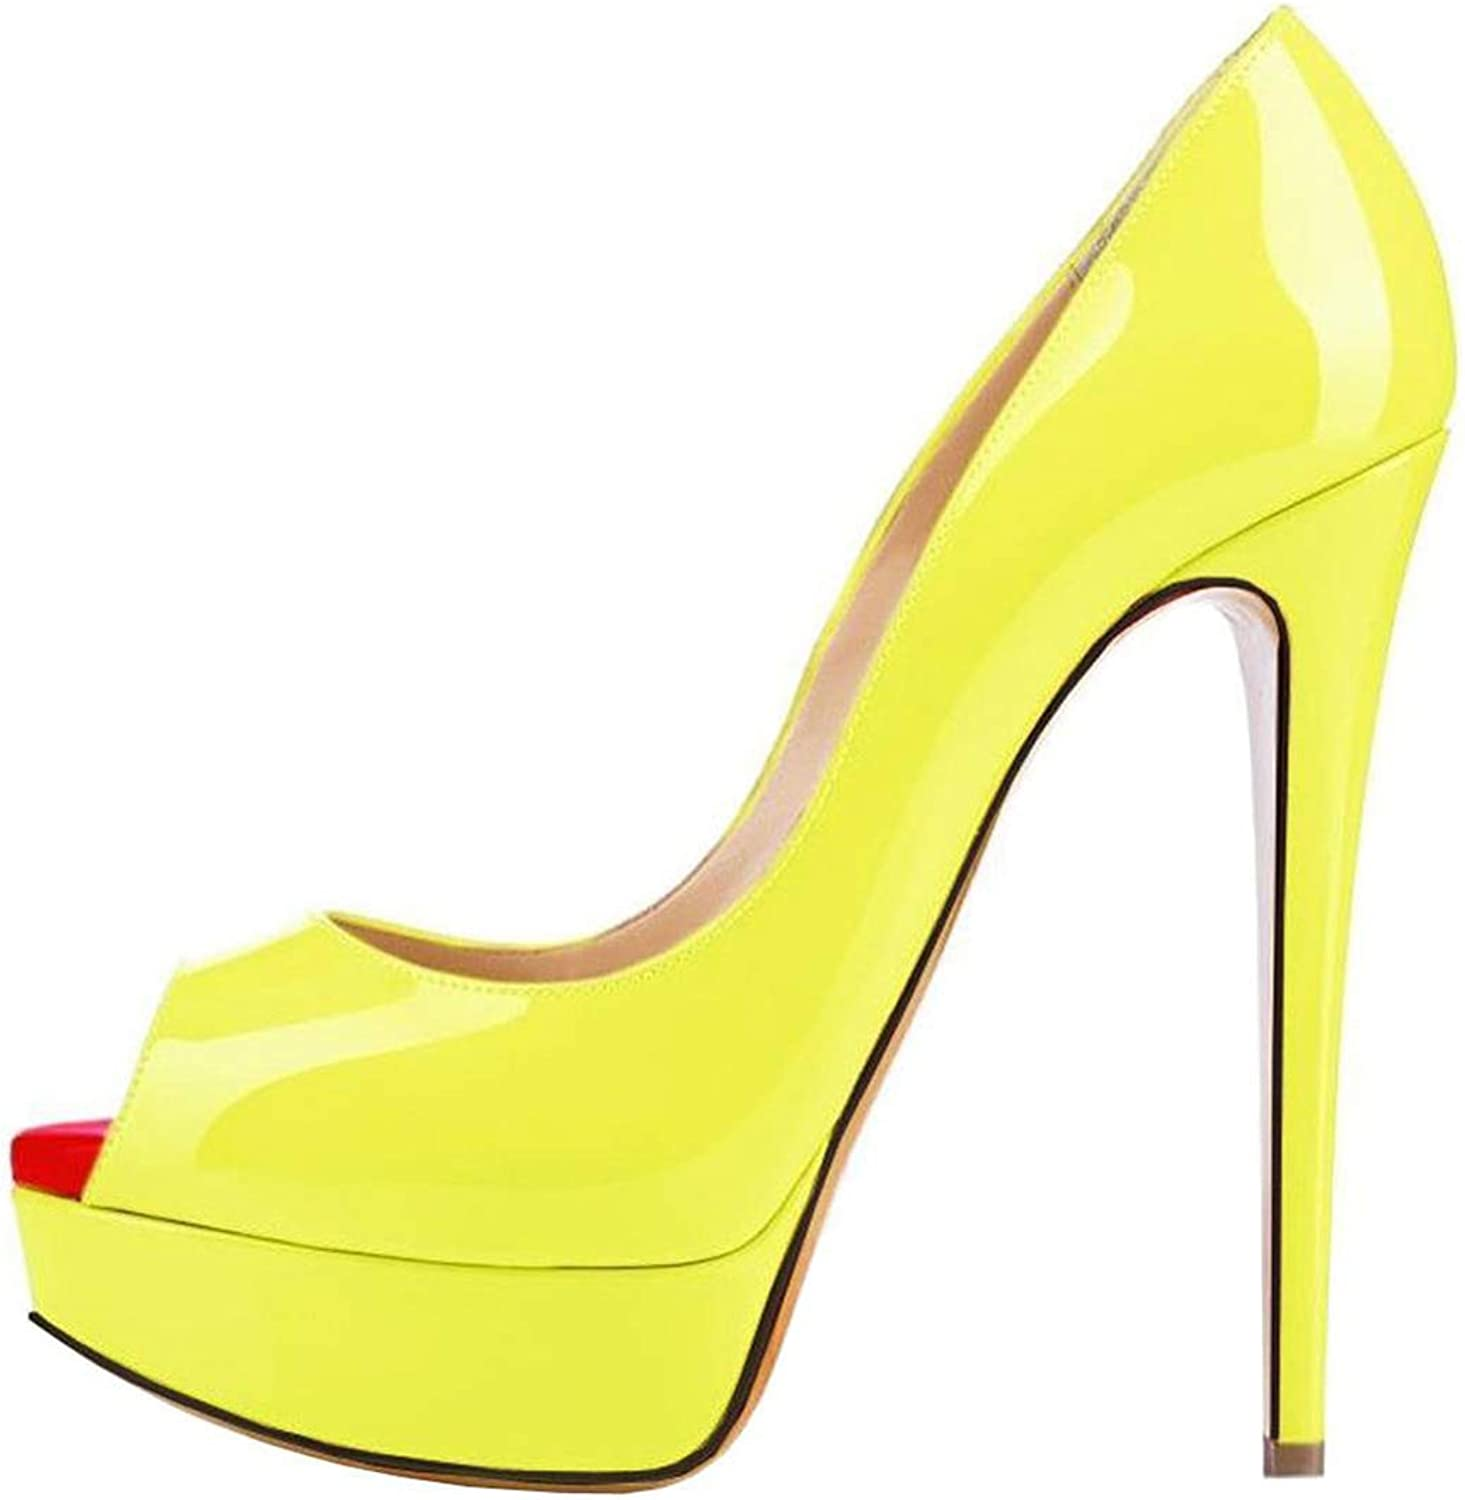 LAIGEDANZI Womens Pumps Leather Wedges Platform Stiletto High Heels Open Toe Sexy Party shoes,Light Yellow,11